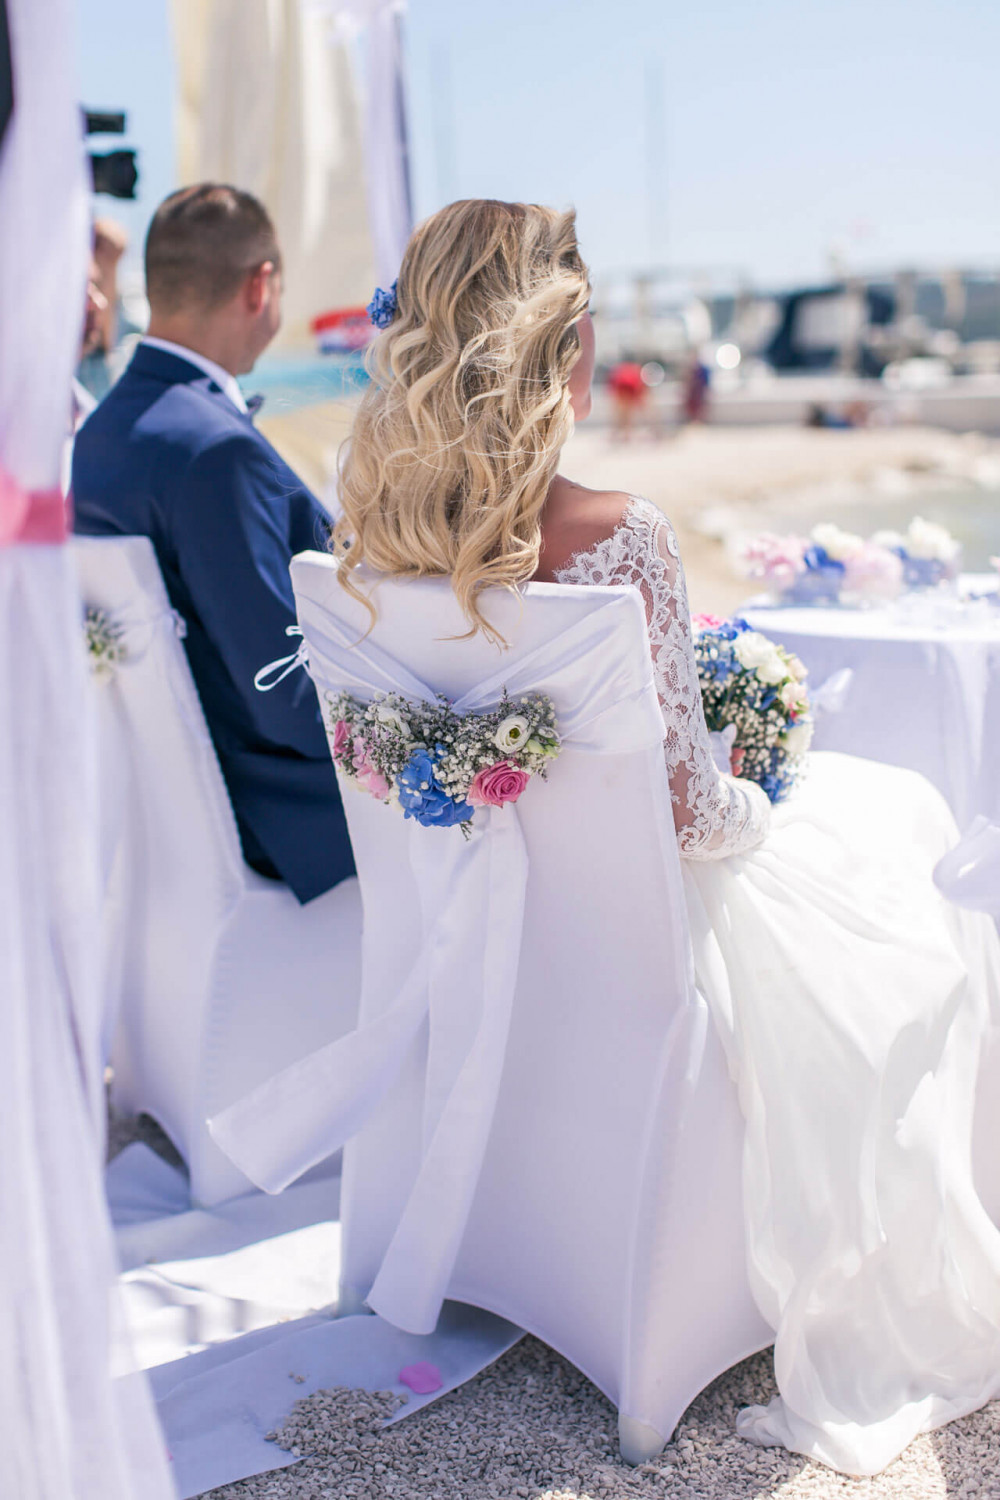 Celebrate your wedding in style at the Yachtclub